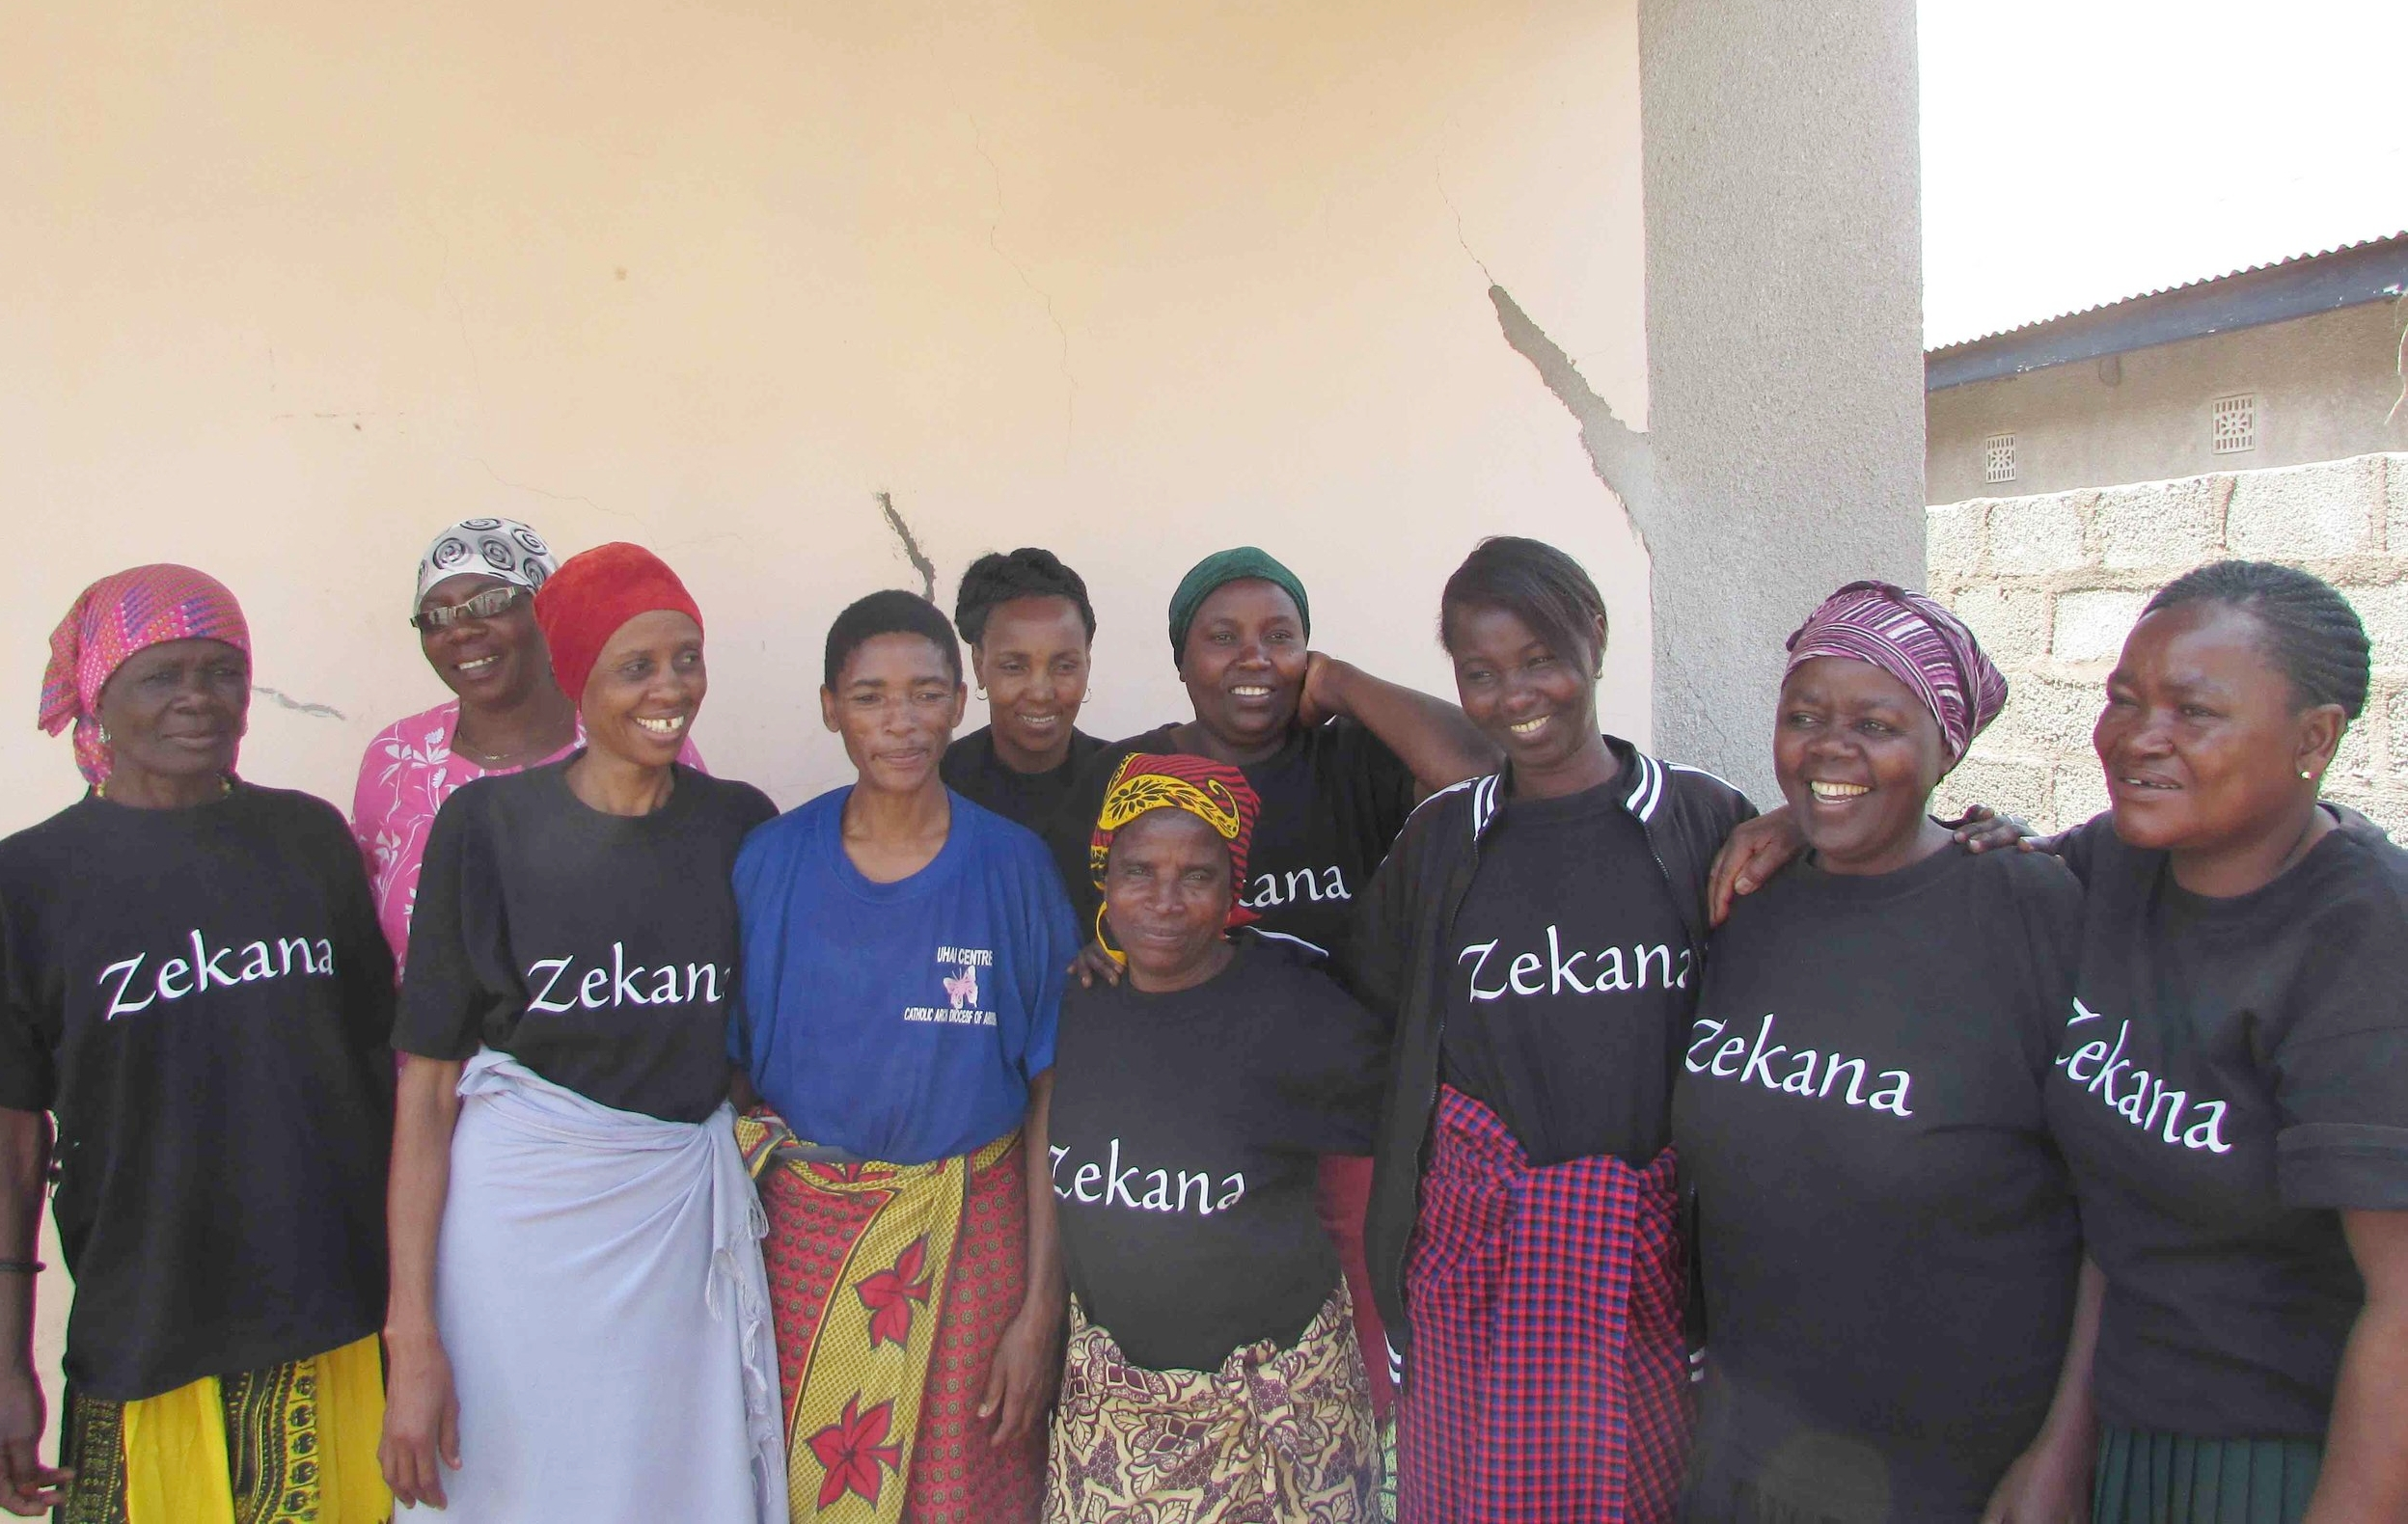 The Zekana woman, which is a group of Eleven woman, Ten bodies.